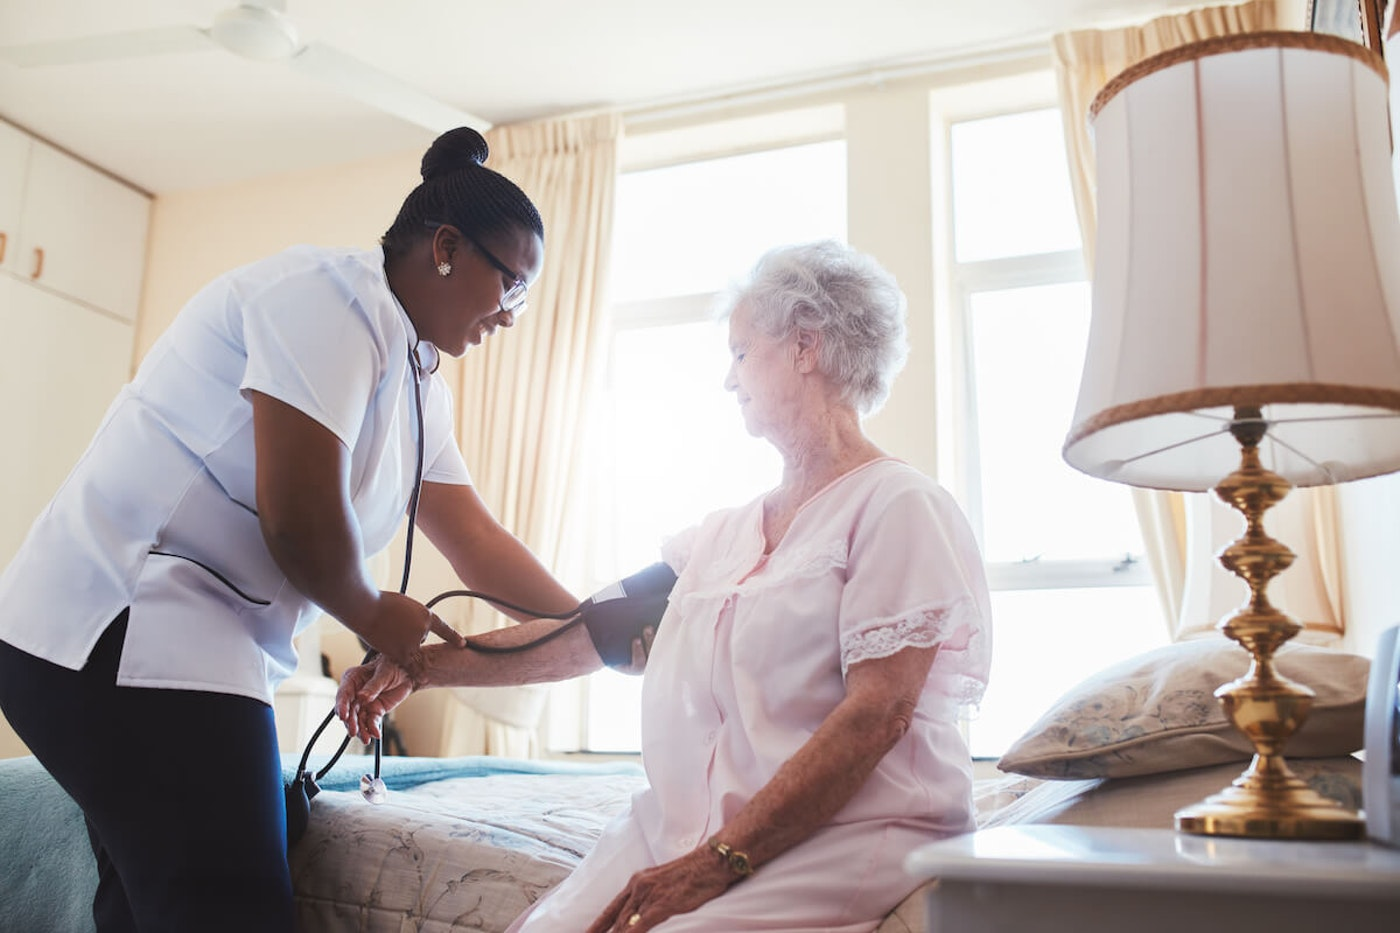 Long-Term Care Providers: $100 Million in Federal Funds Is Not Enough To Help